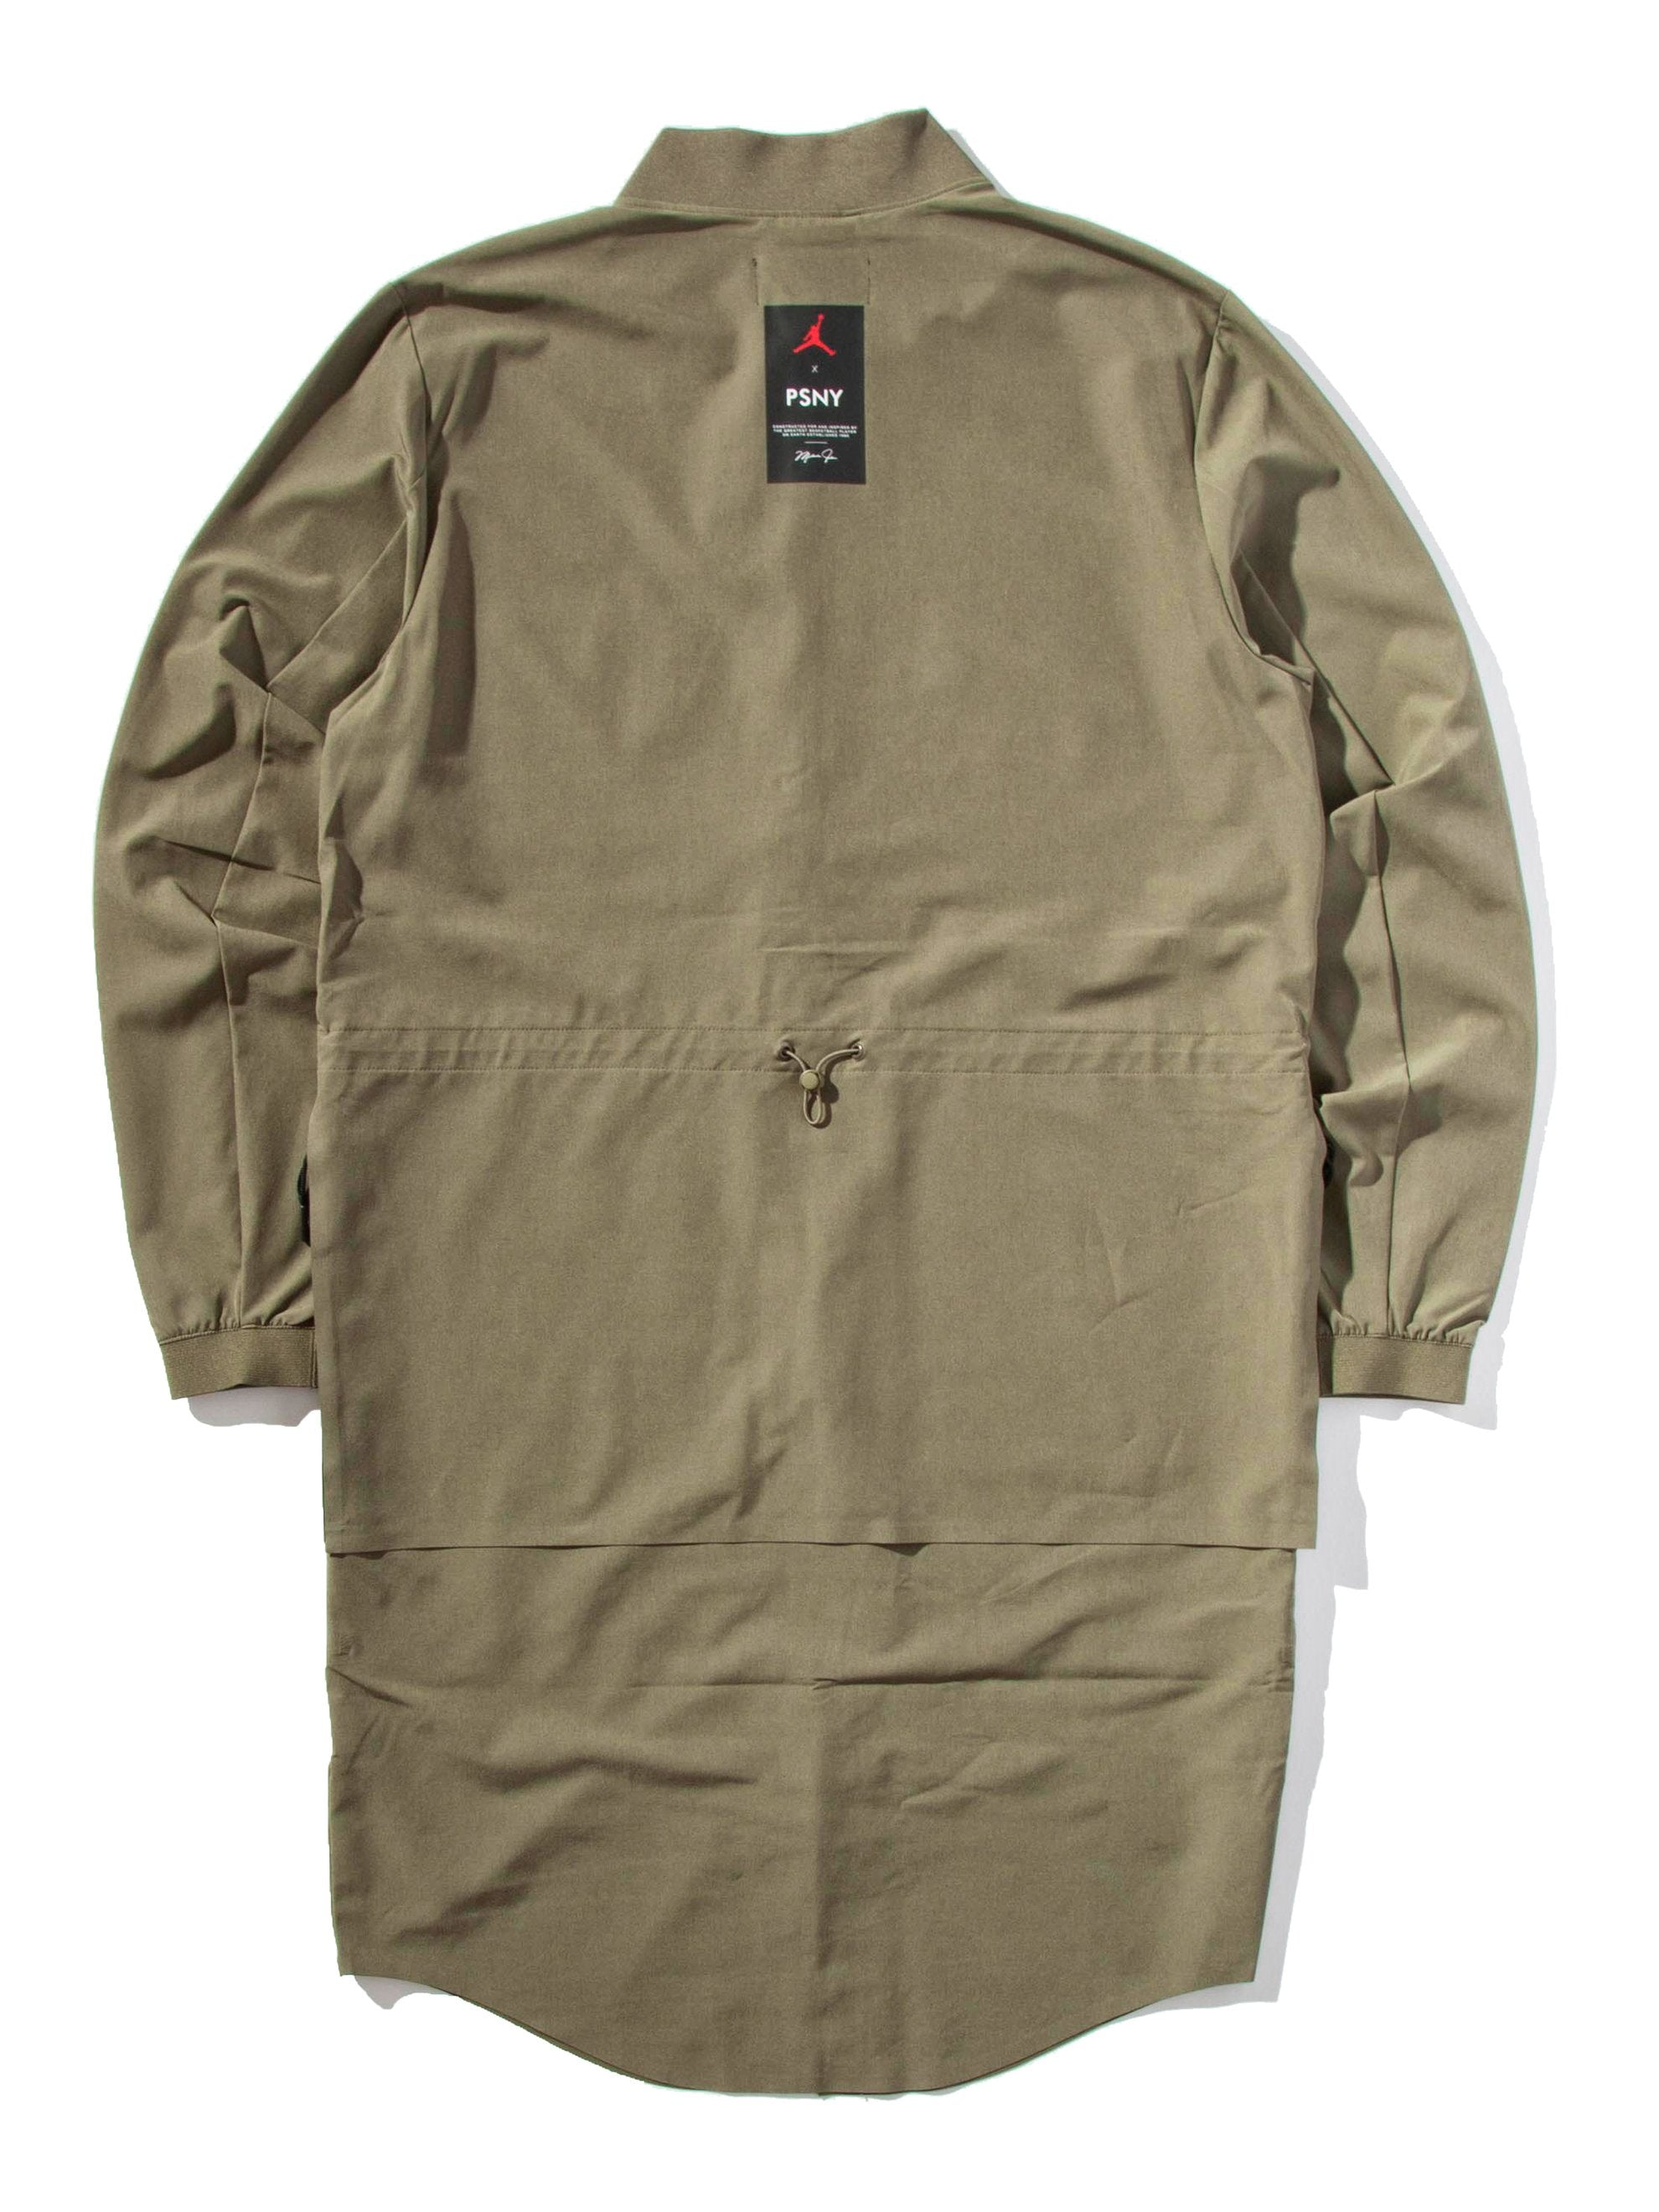 PSNY x Jordan Tech Trench Jacket